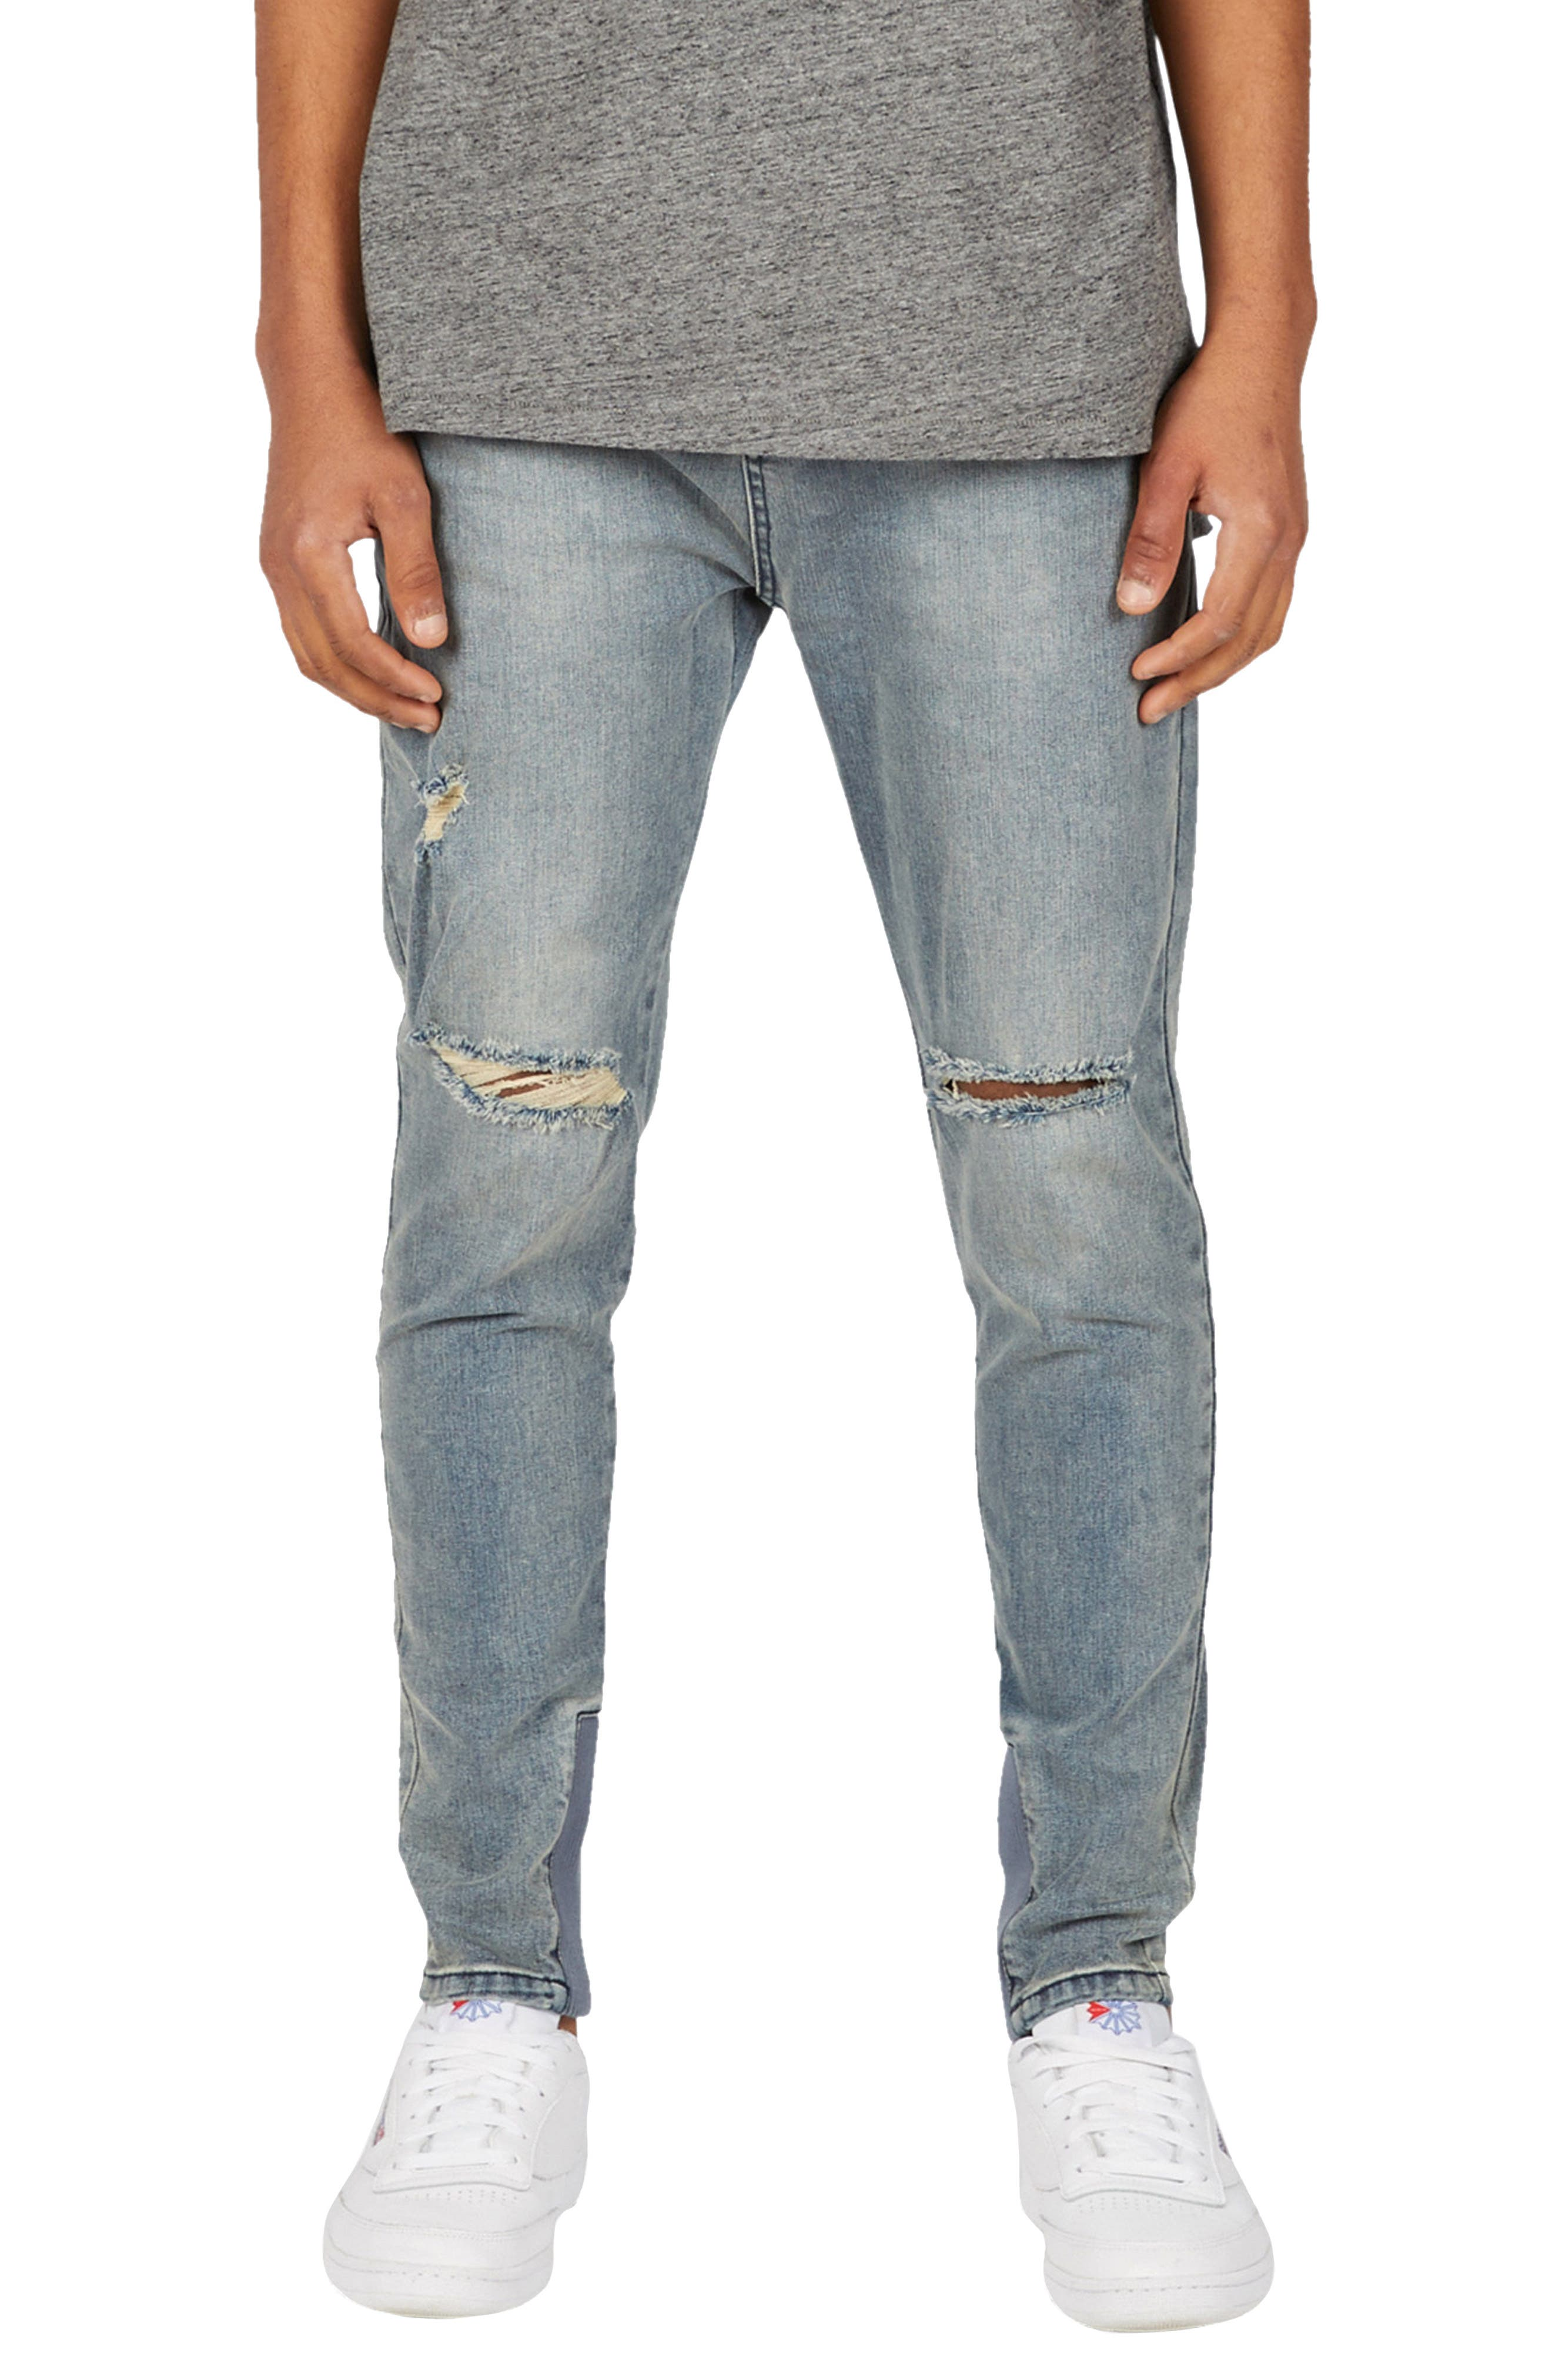 Sharpshot Slouchy Slim Fit Jeans,                         Main,                         color,